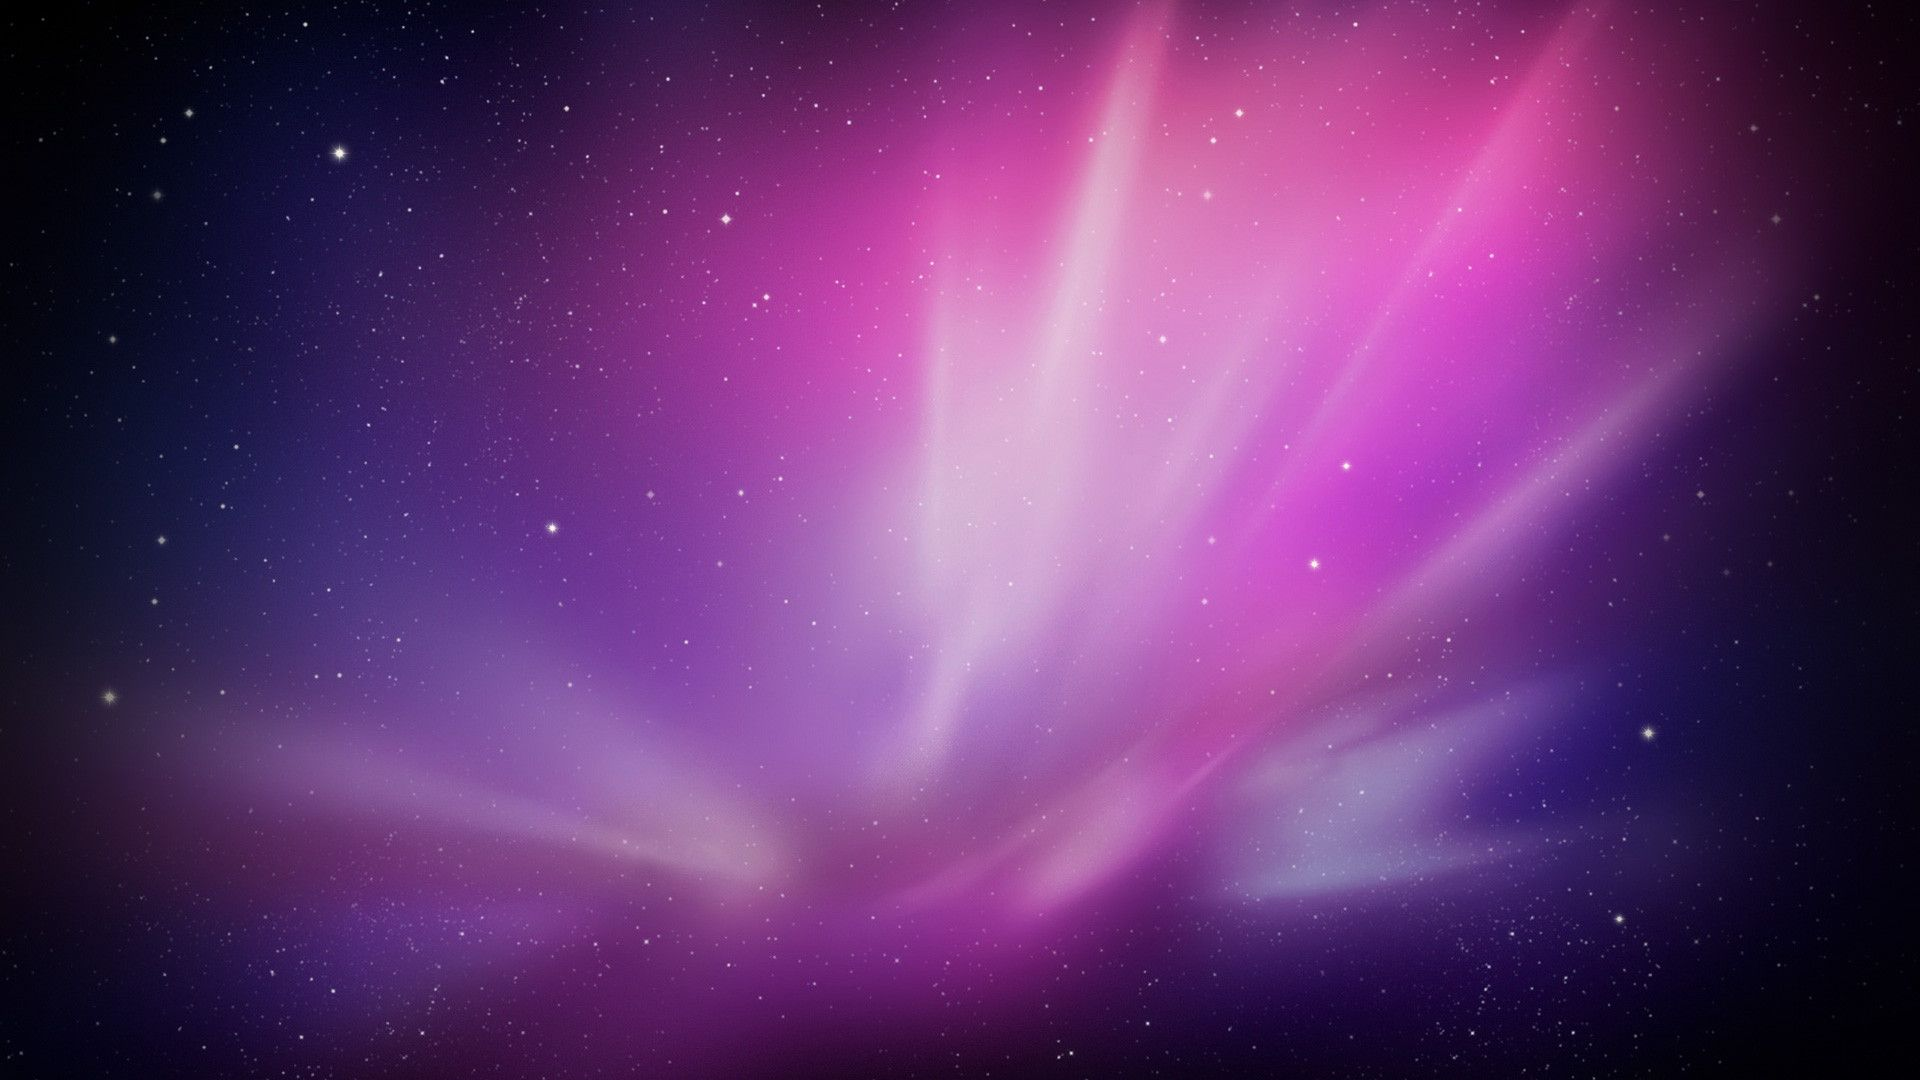 Mac Wallpaper 1080p